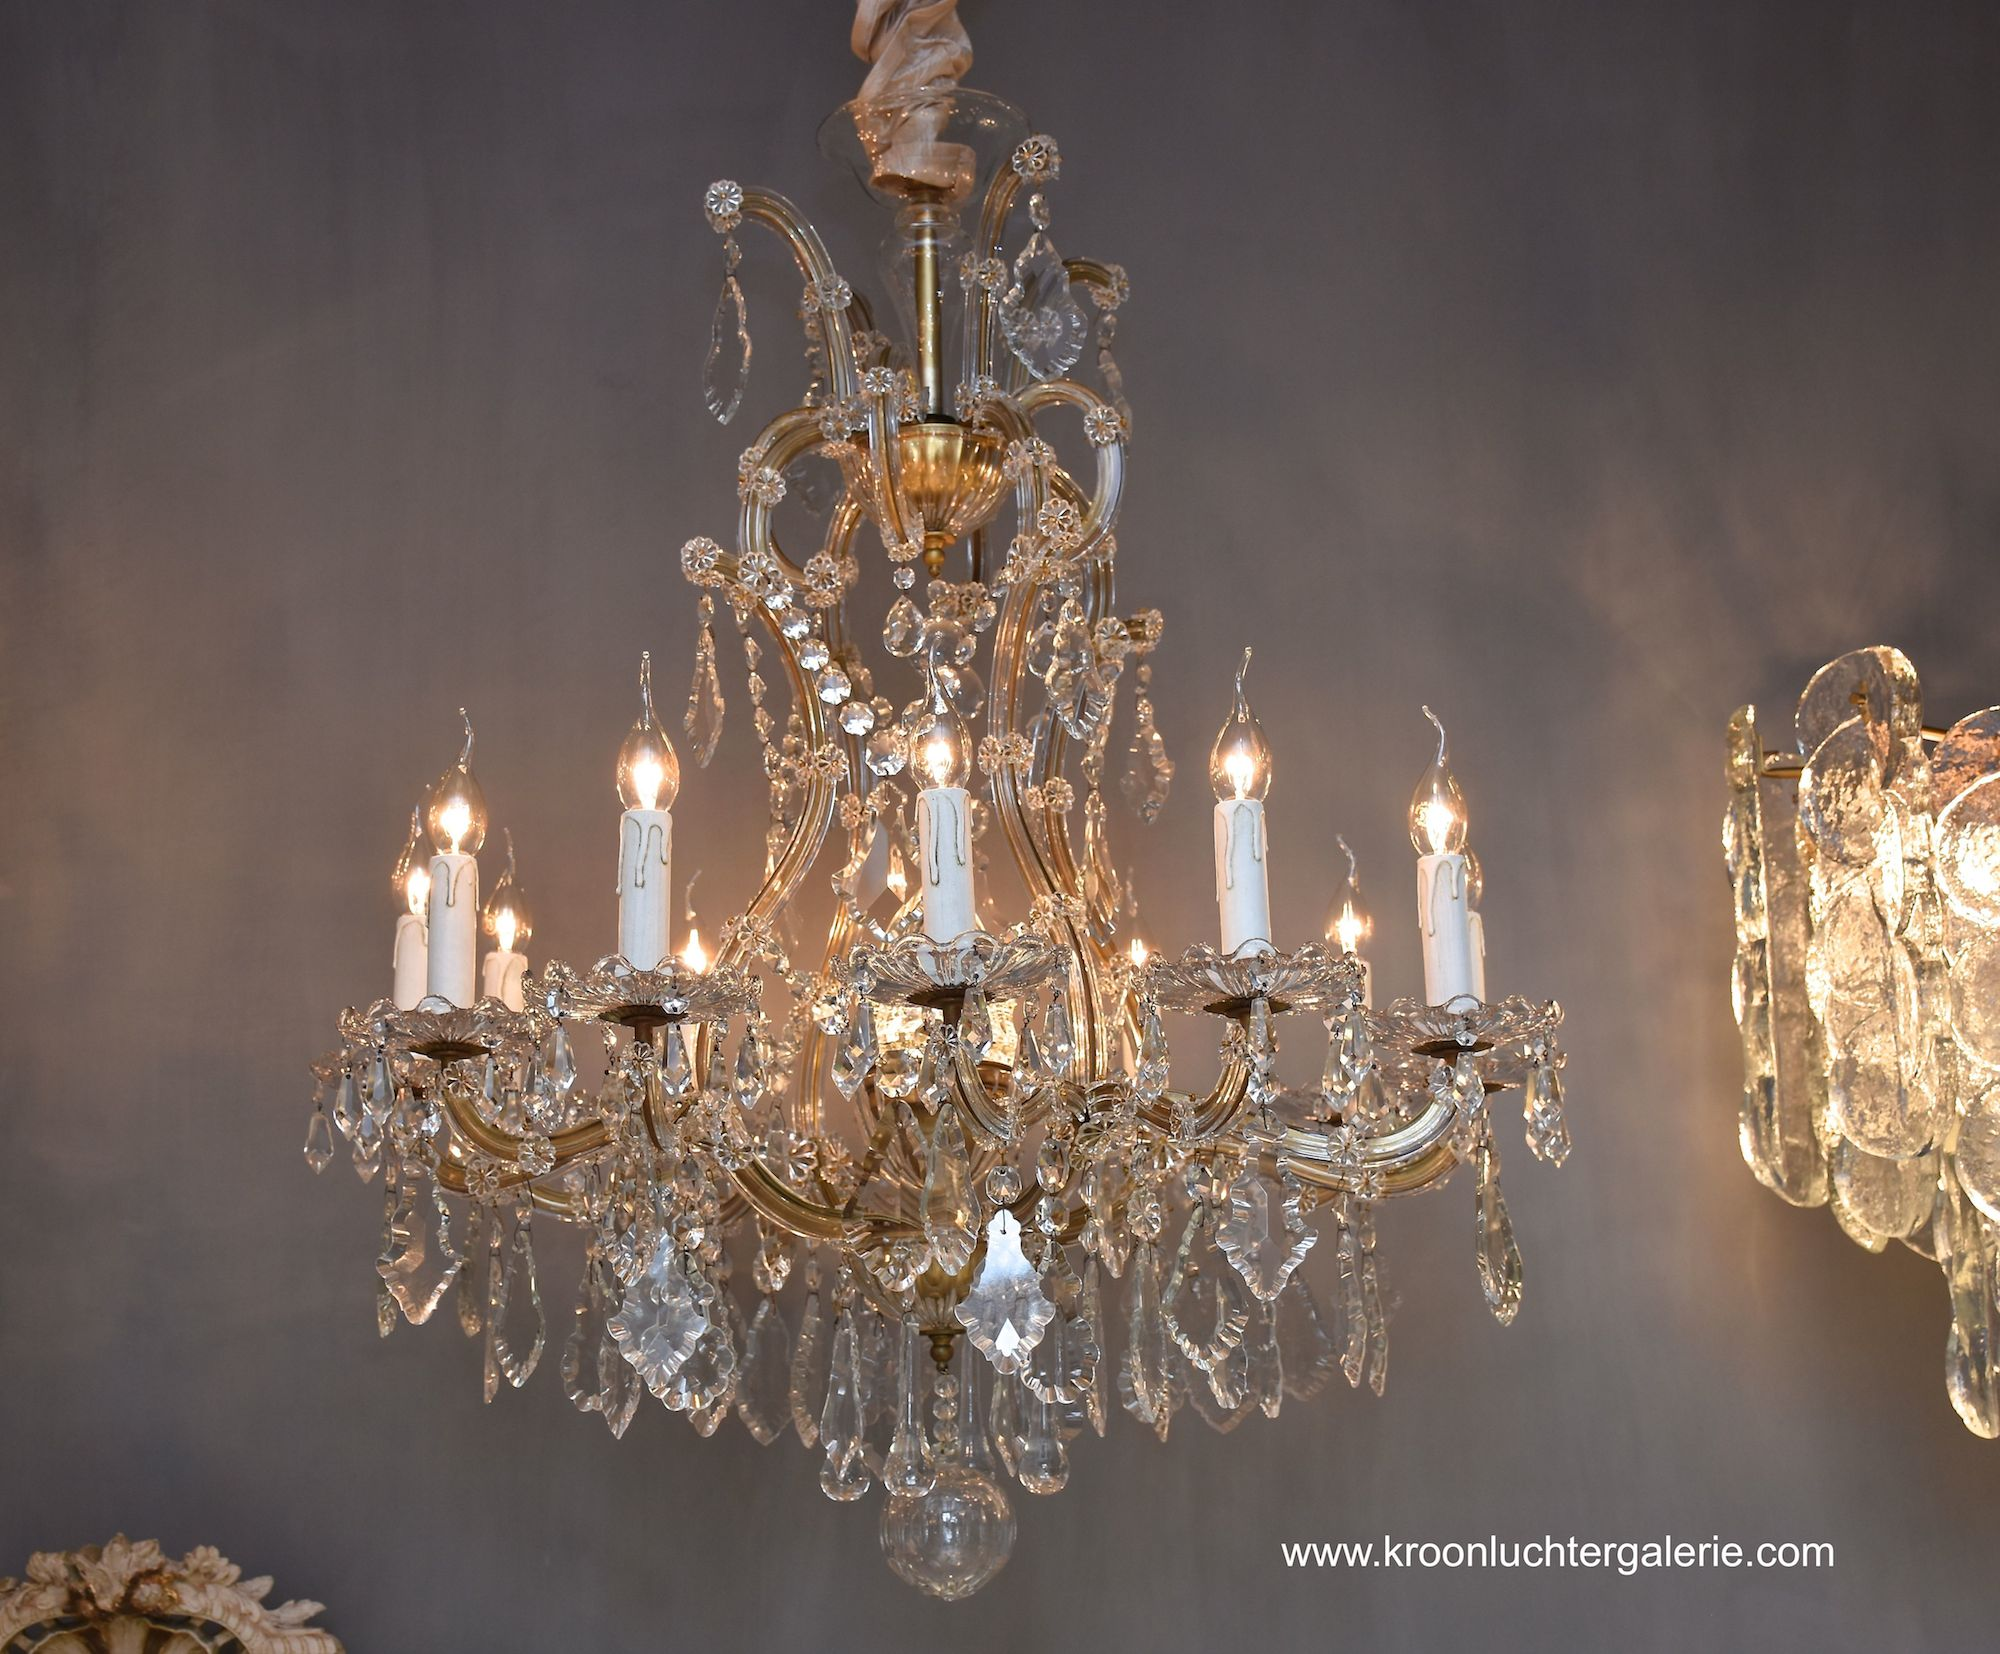 Maria Theresia chandelier with 13 light